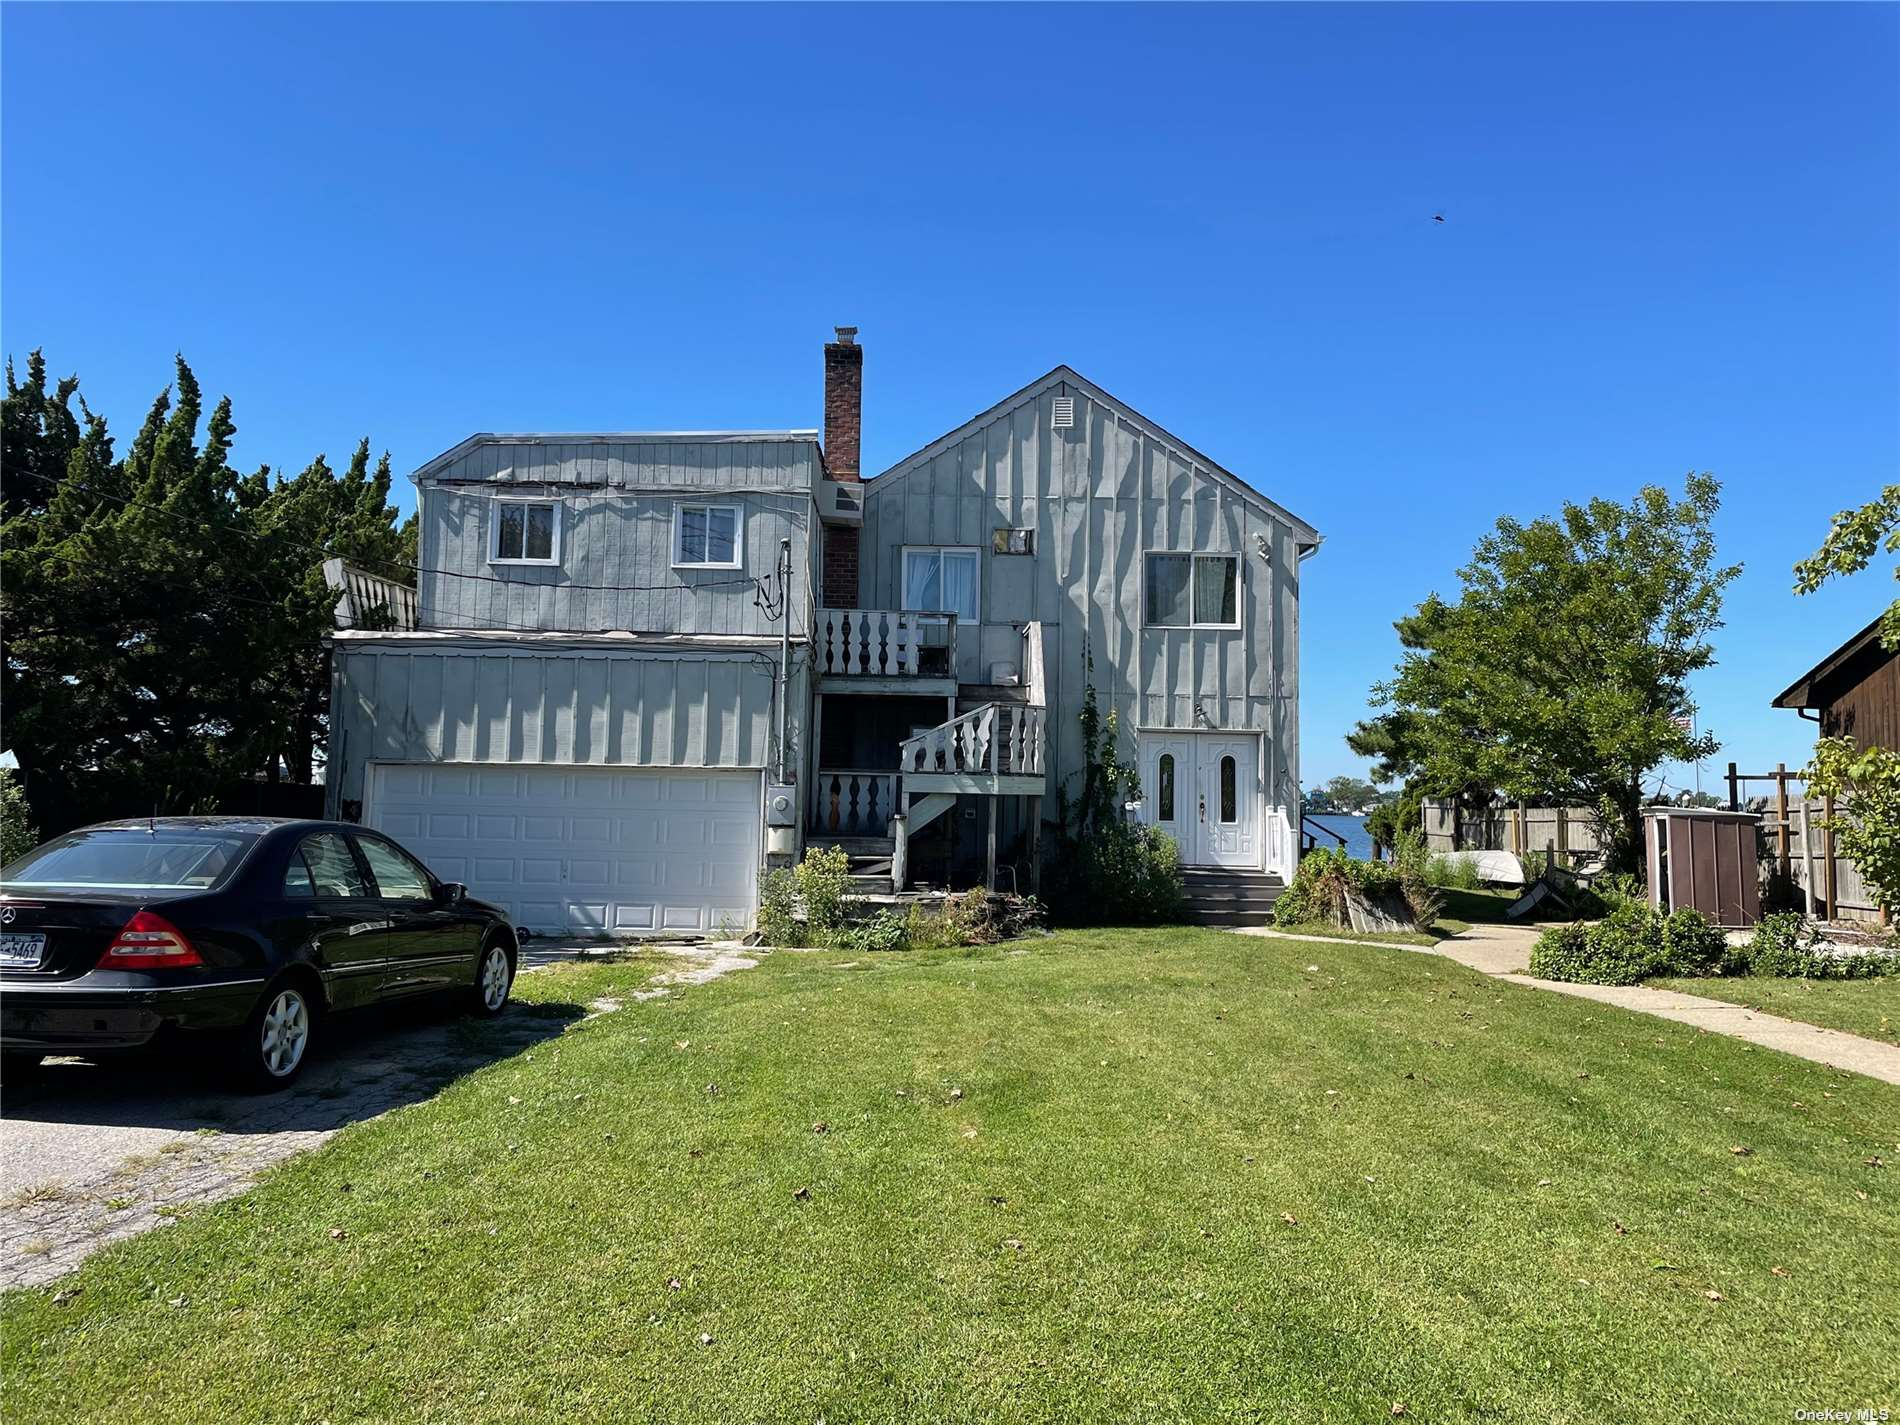 65 X 158 Property on Open Bay with Pristine View a Builders Dream Come True